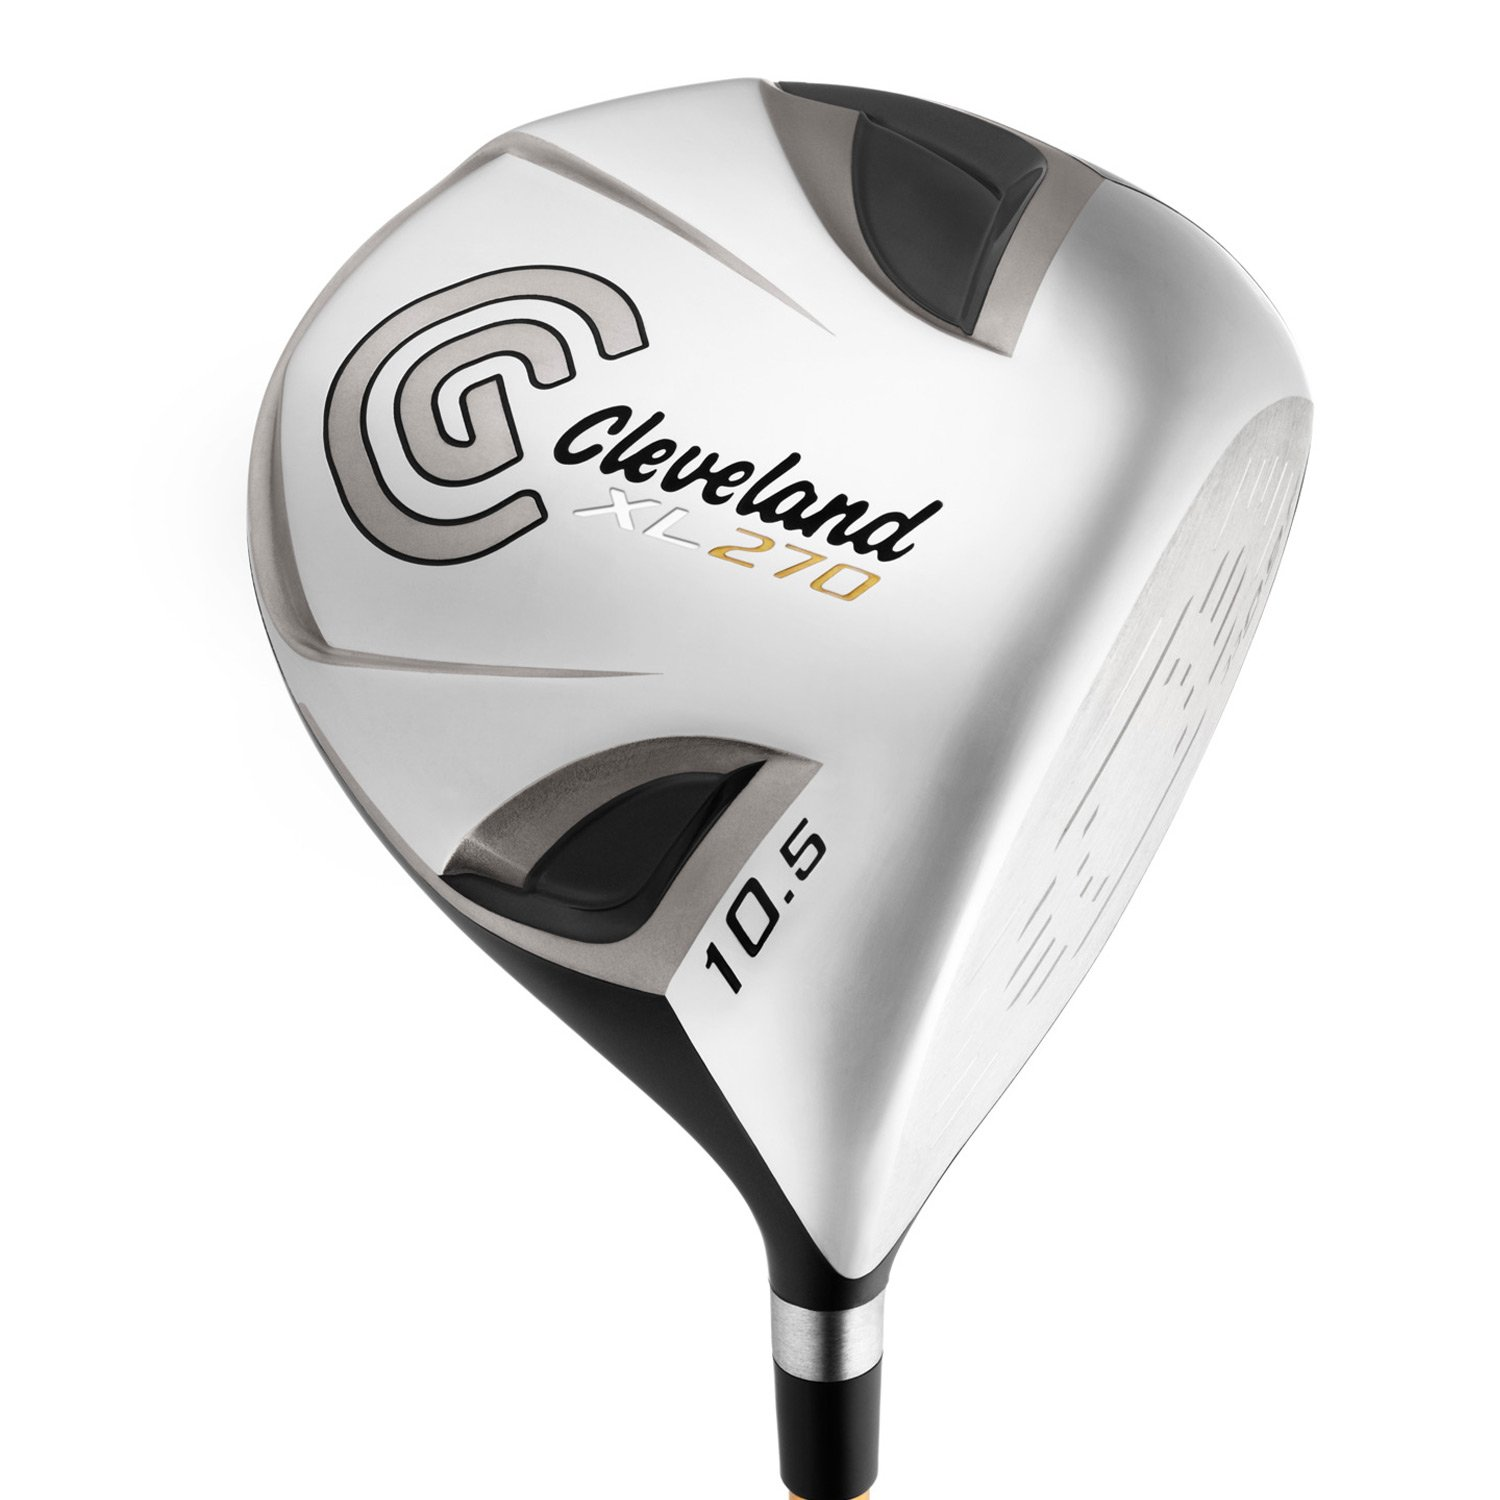 CLEVELAND GOLF LAUNCHER XL270 DRIVER DOWNLOAD